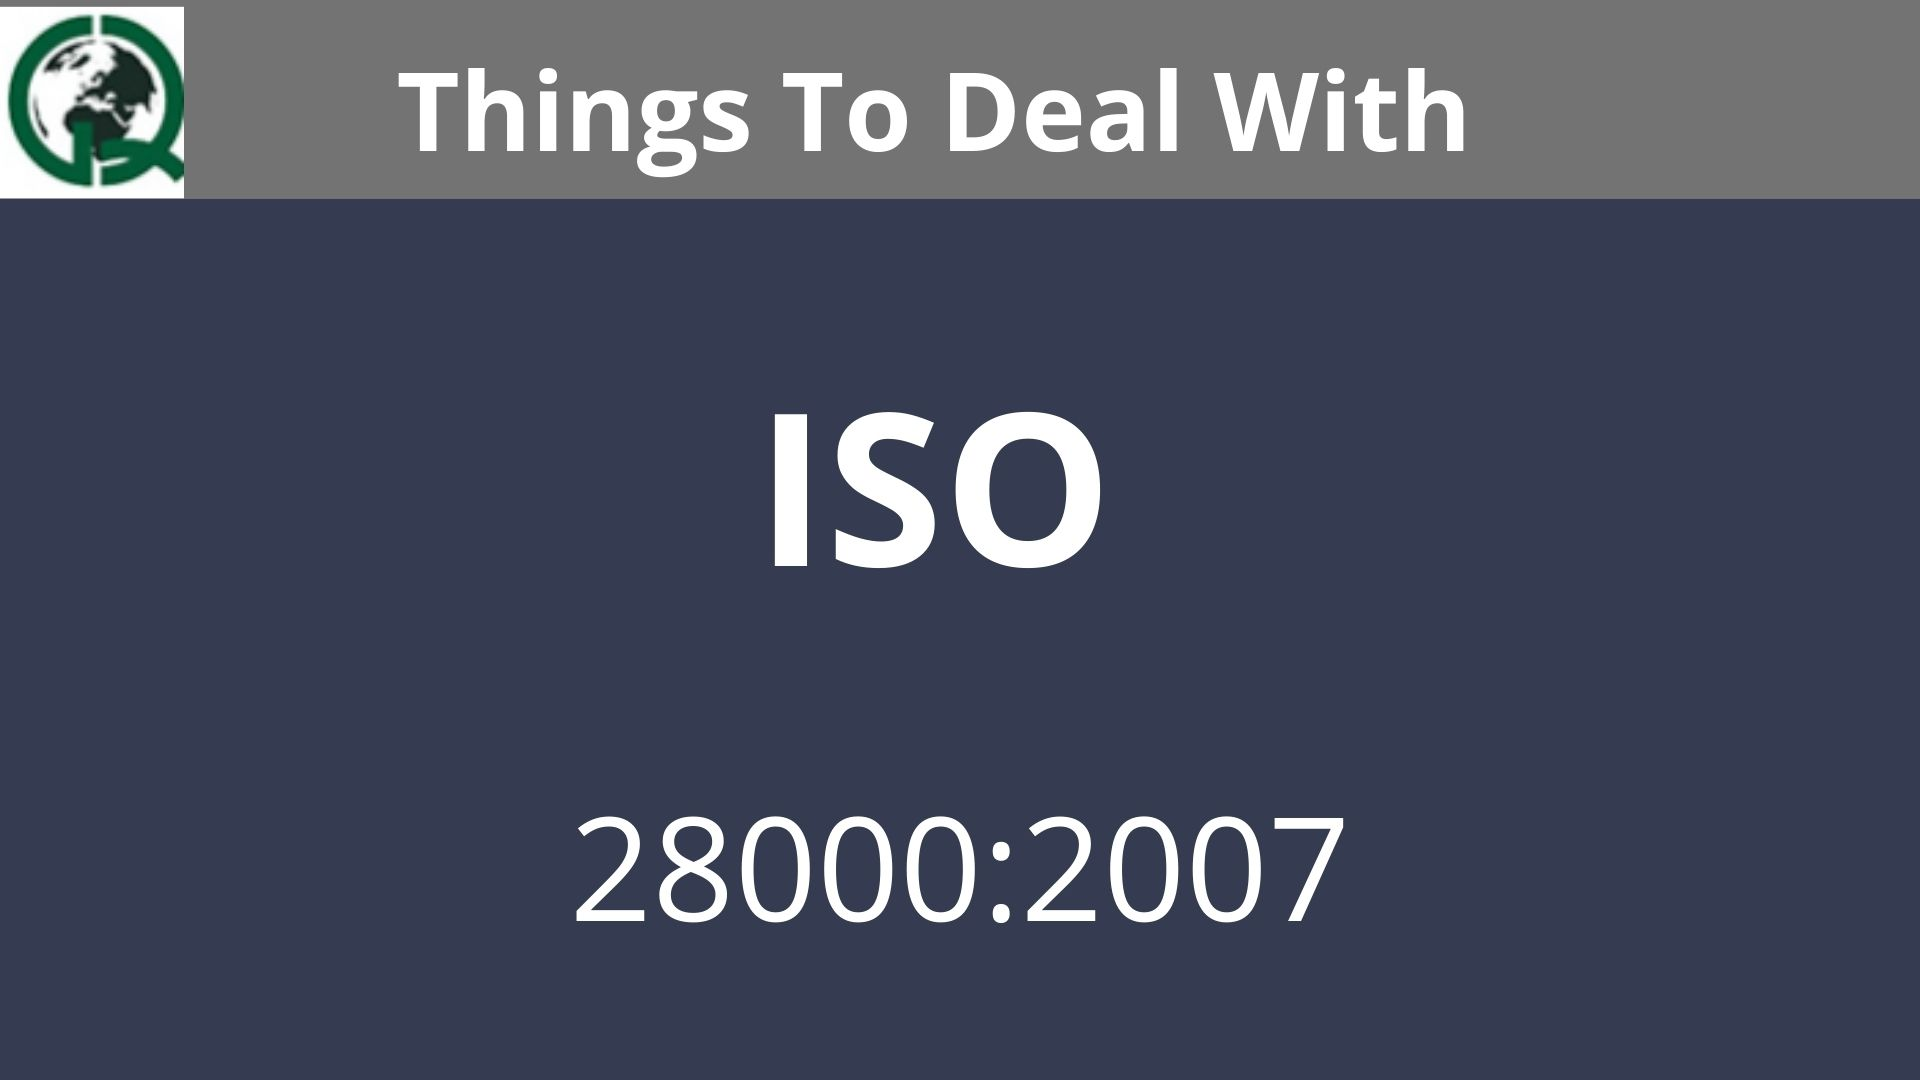 Things to deal with ISO 28000:2007 certifications